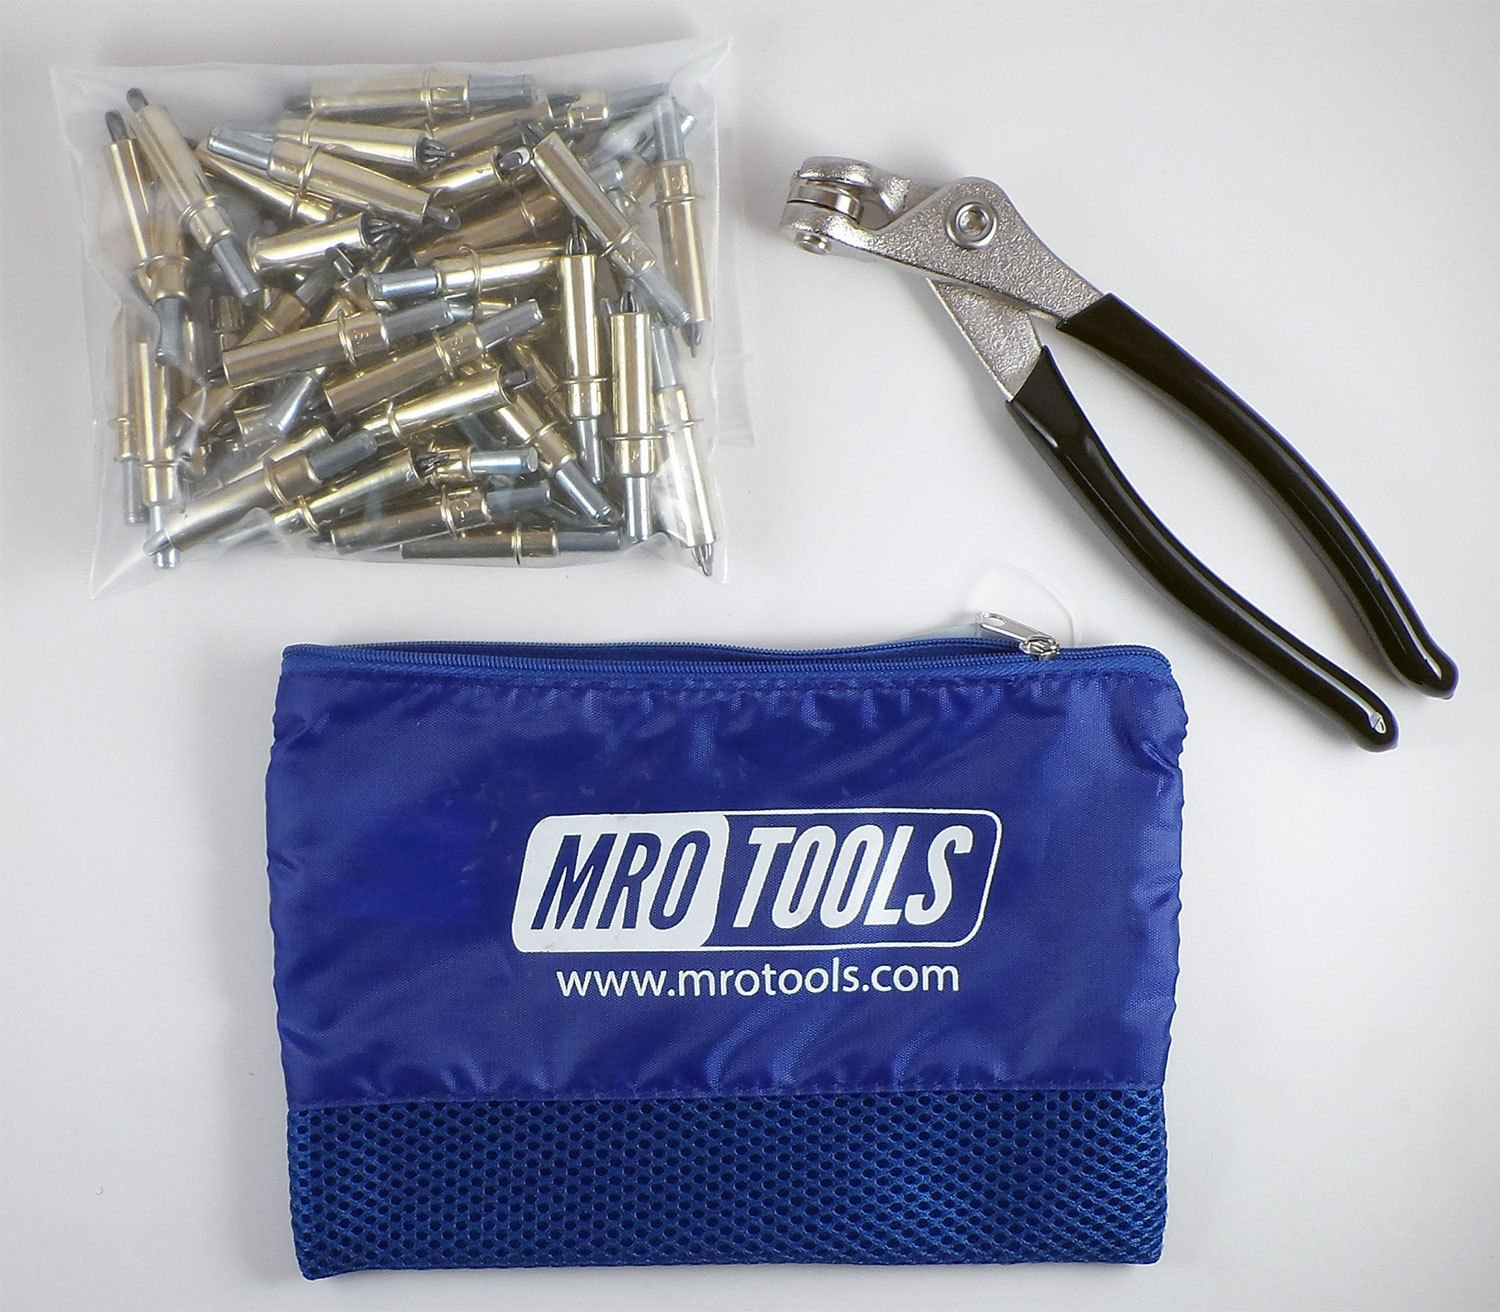 50 3/16 Cleco Sheet Metal Fasteners + Cleco Pliers w/Carry Bag (K1S50-3/16) by MRO Tools Cleco Fasteners